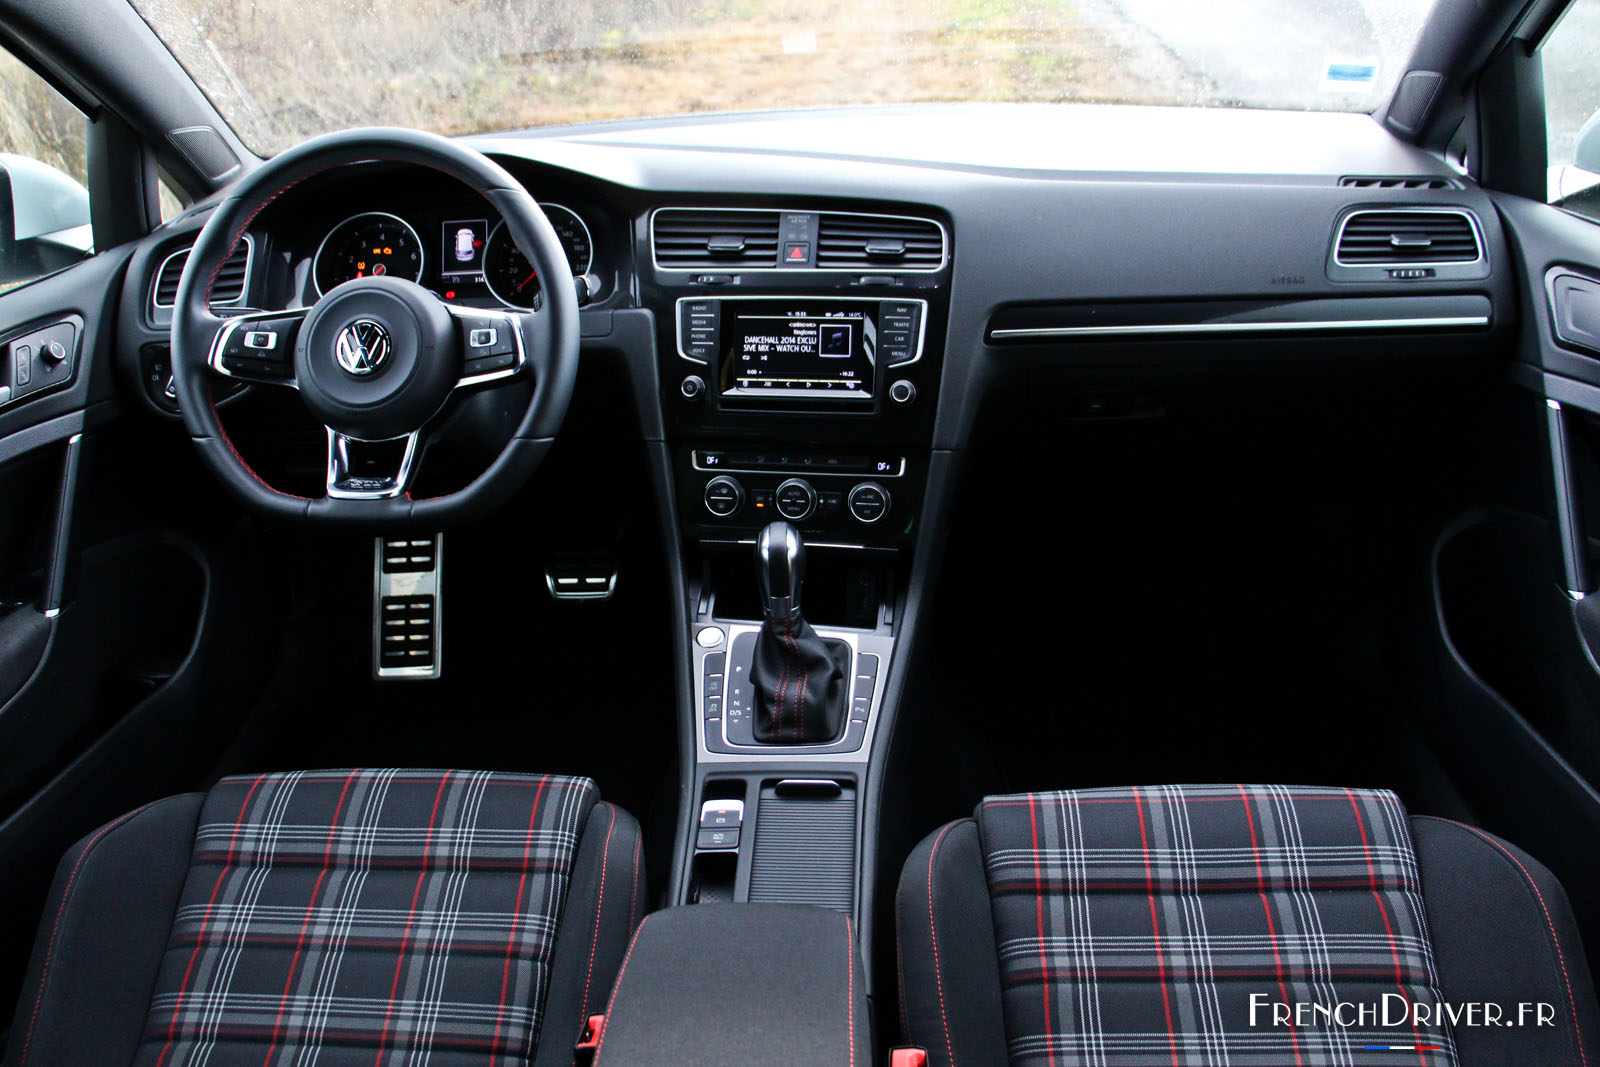 essai de la volkswagen golf gti quarante ans apr s toujours pr sente french driver. Black Bedroom Furniture Sets. Home Design Ideas